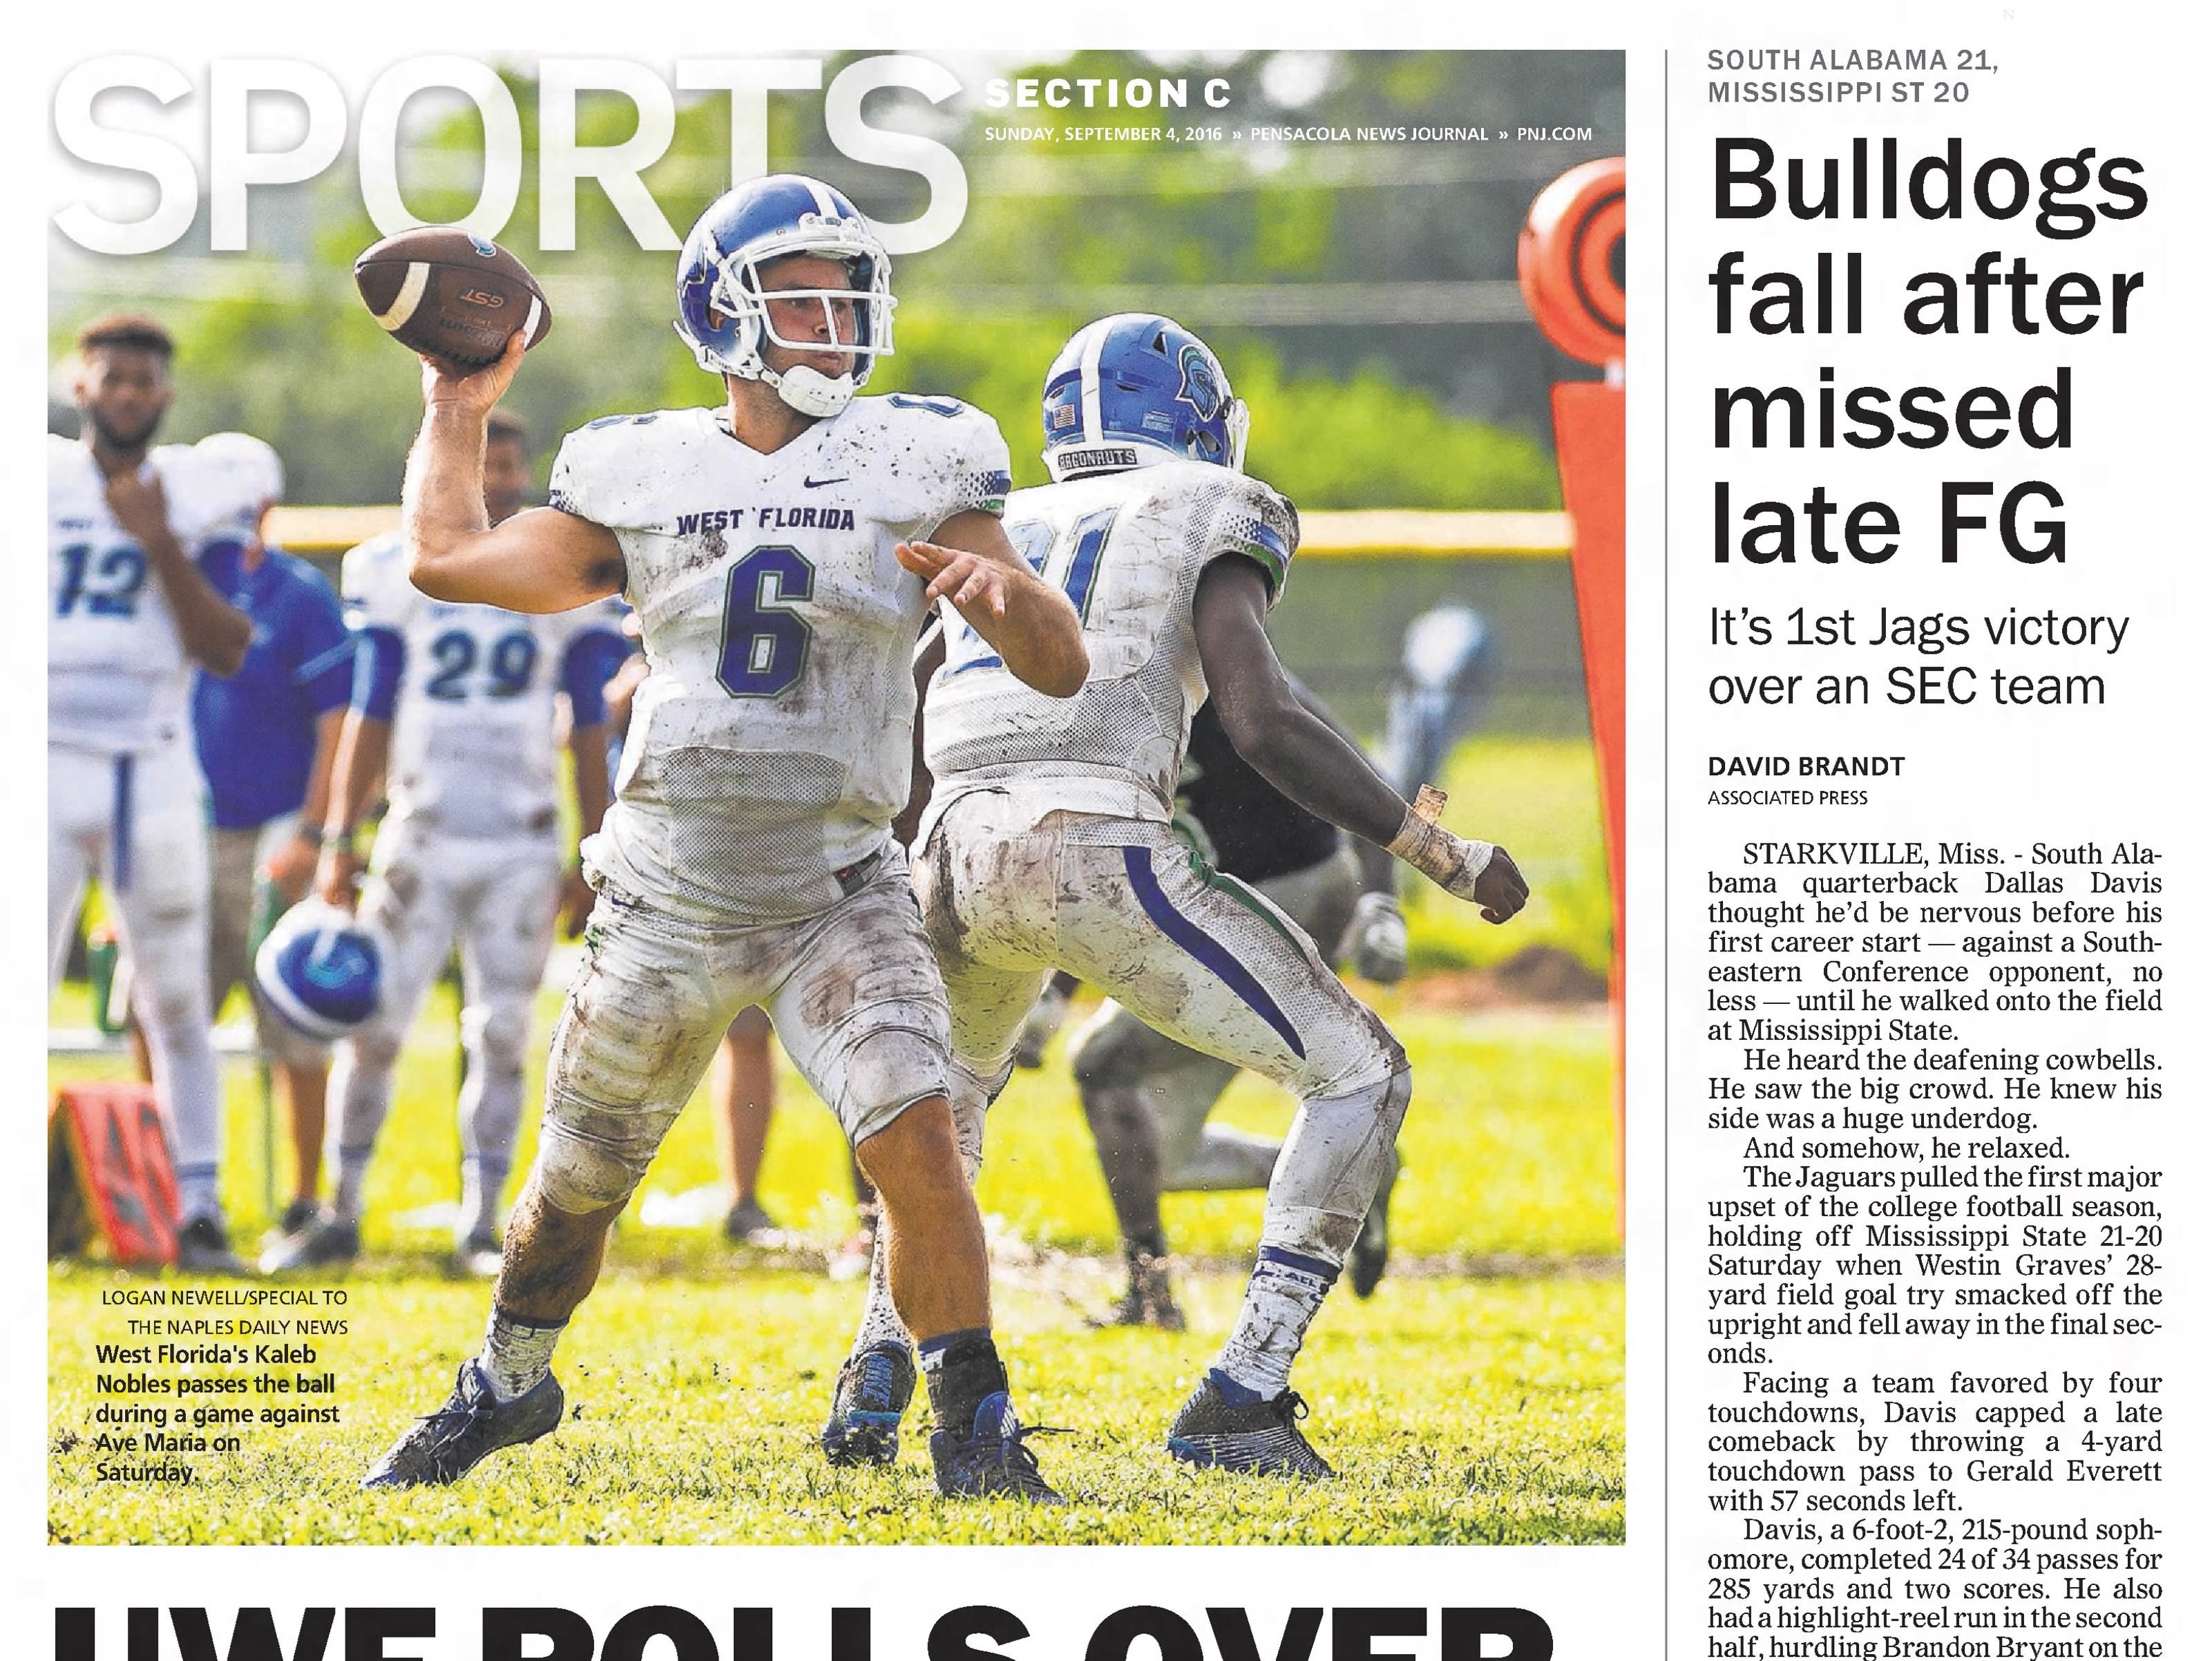 Sept. 2016: UWF plays first football game in school history, topping Ave Maria in rout.